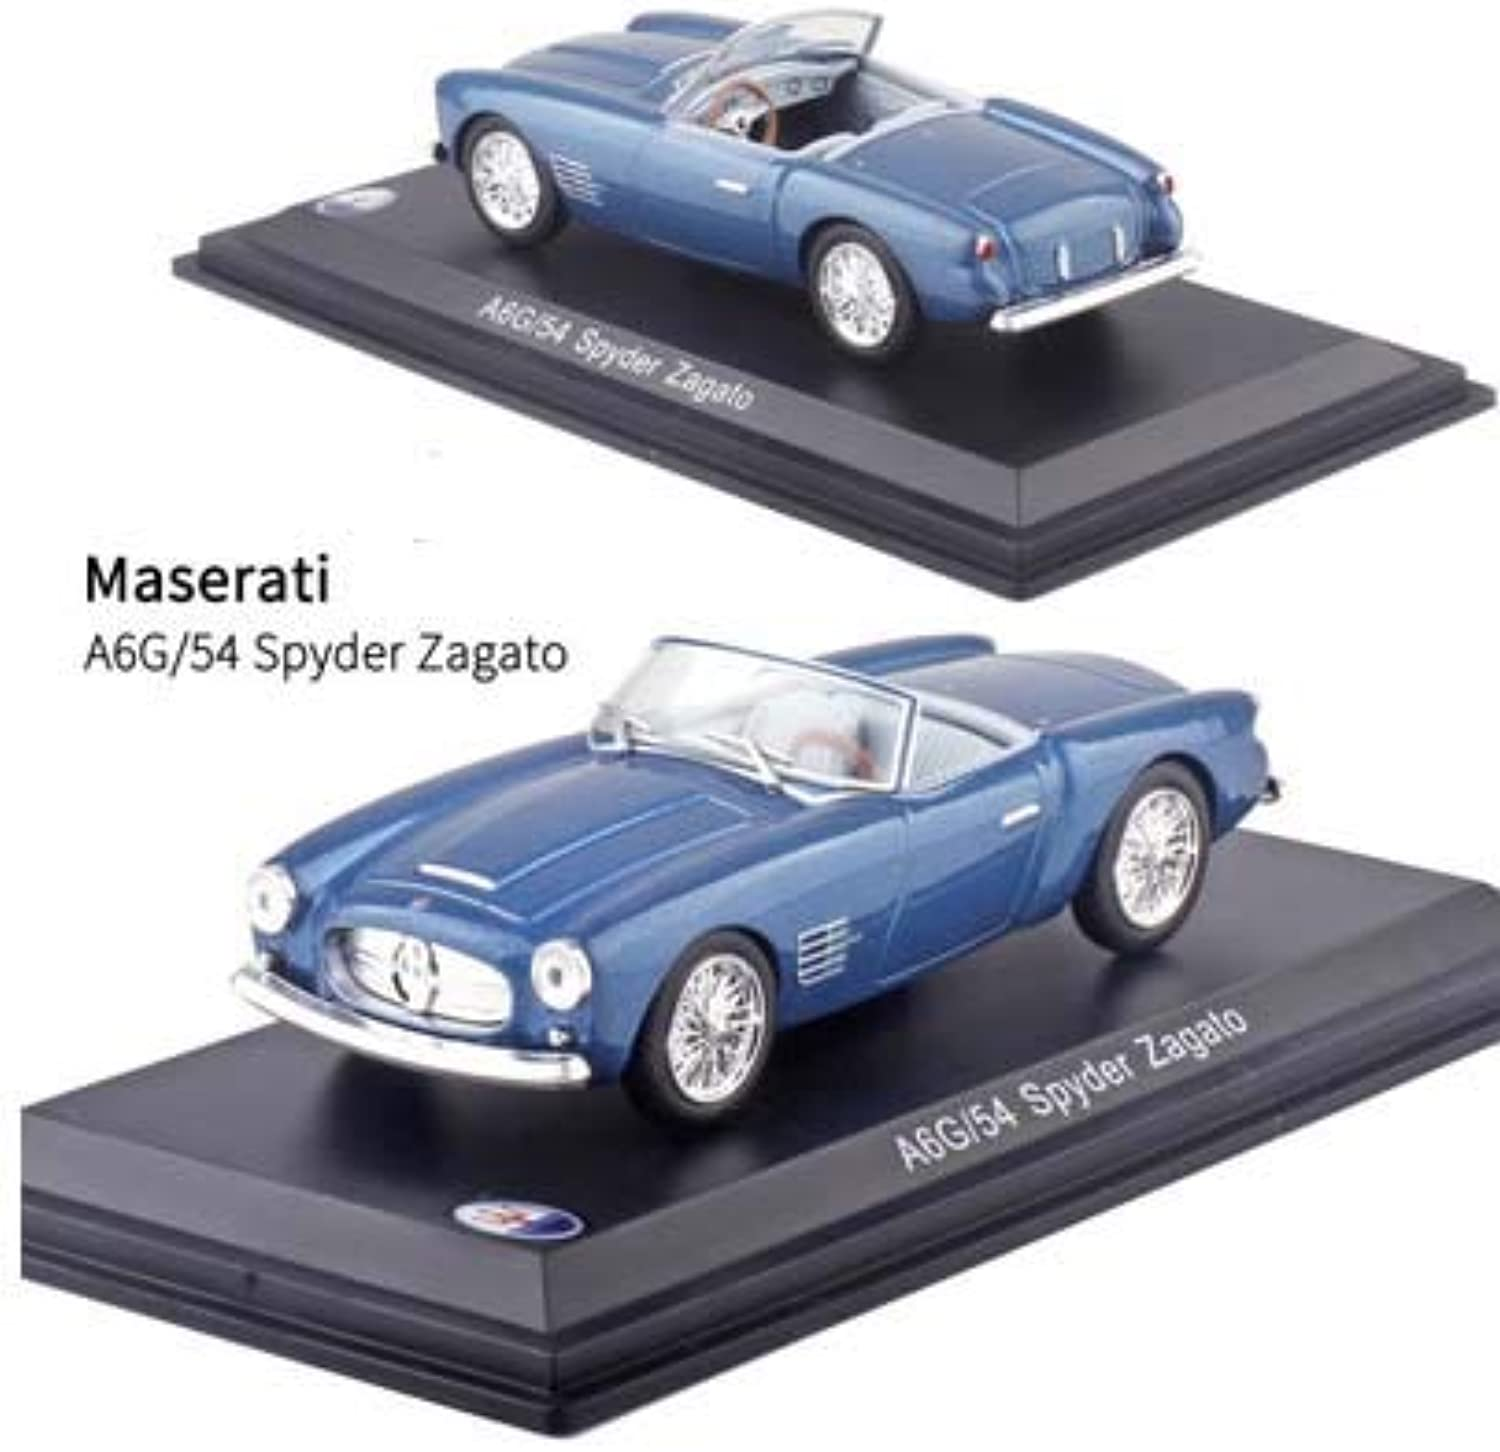 Generic 1 43 Scale  Maseratis Alloy Diecast Car Model Vehicle Toys Antique Vintage Sport Muscle for Kids Toys Gifts Box 23